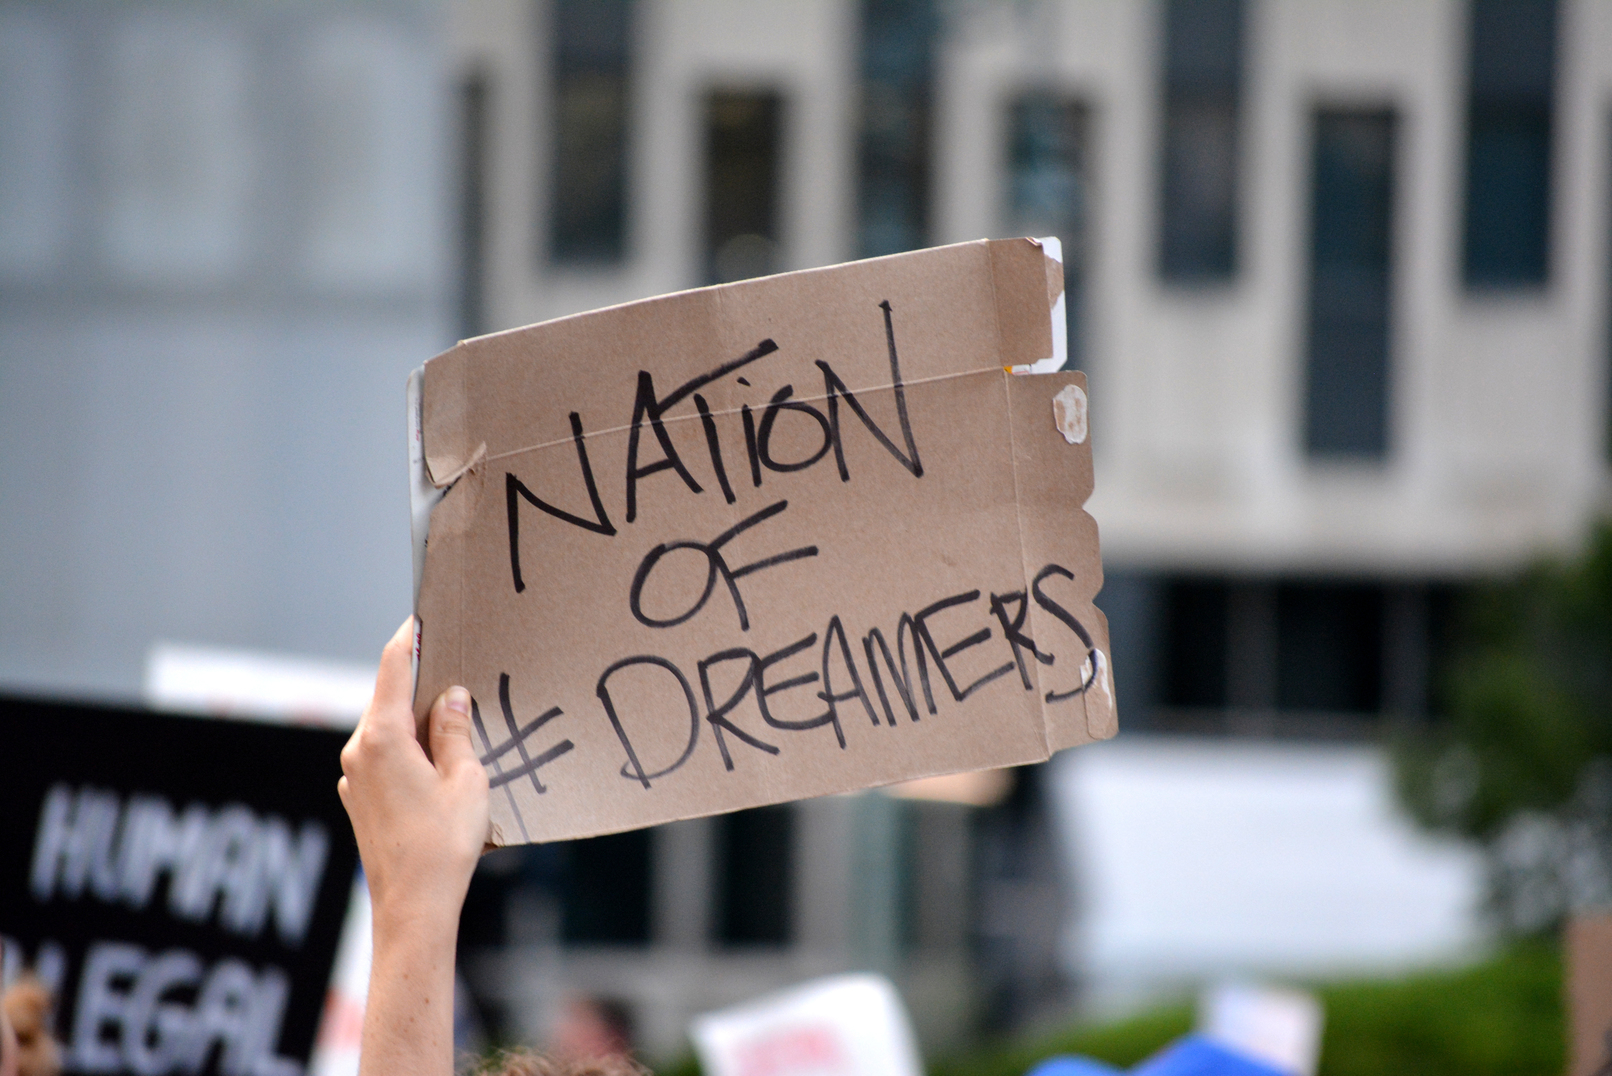 D.C. Federal Judge Orders Trump Administration to Accept New DACA Applications